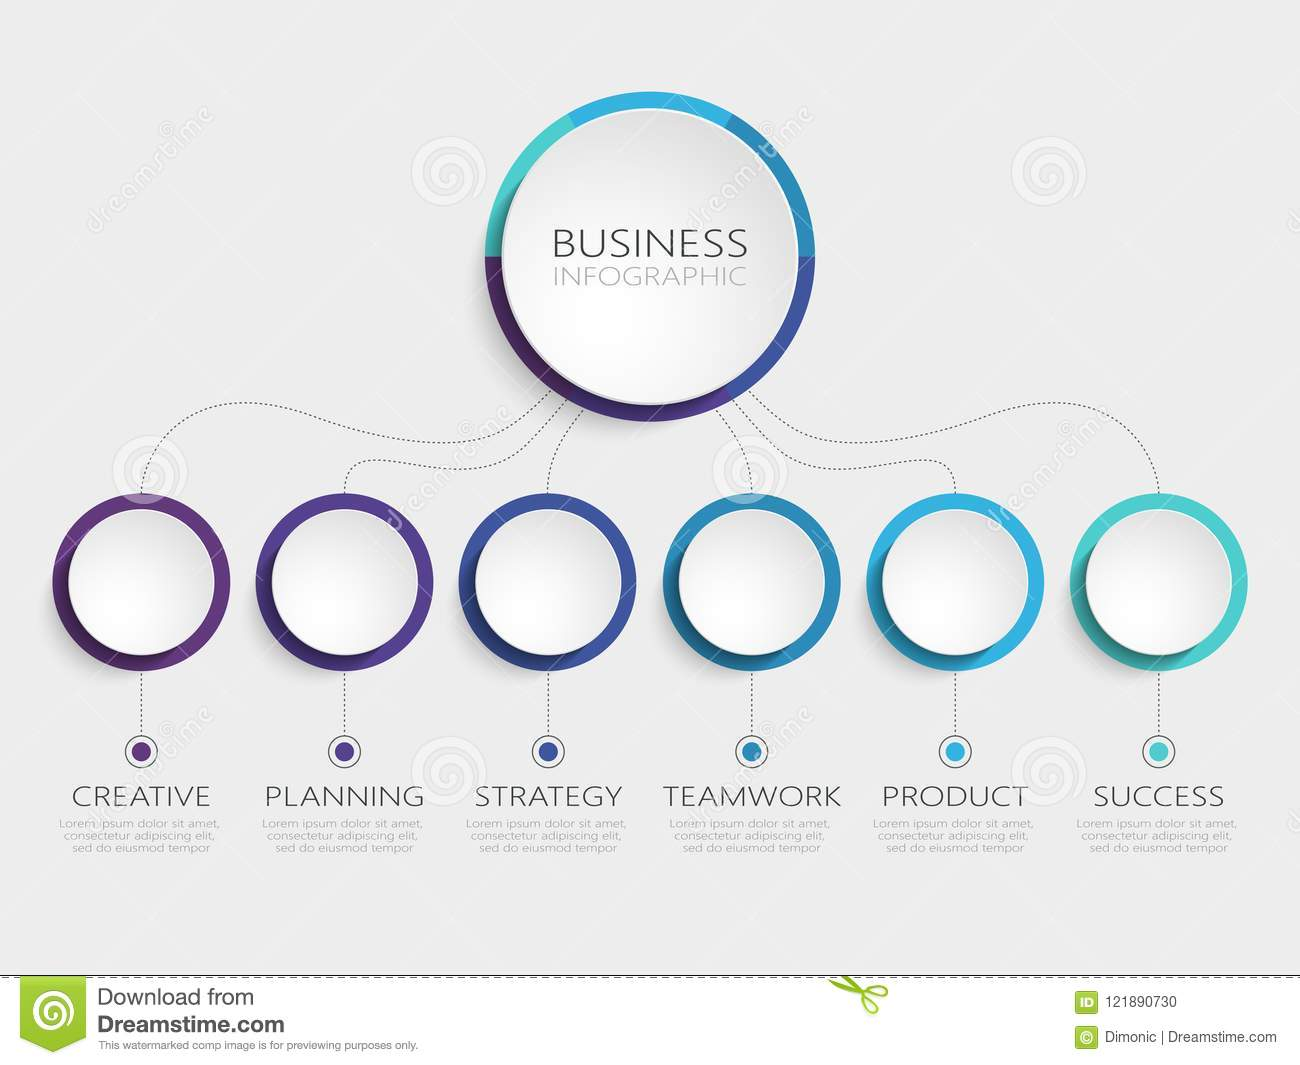 Abstract 3D Infographic Template With 6 Steps For Success Business Circle Options